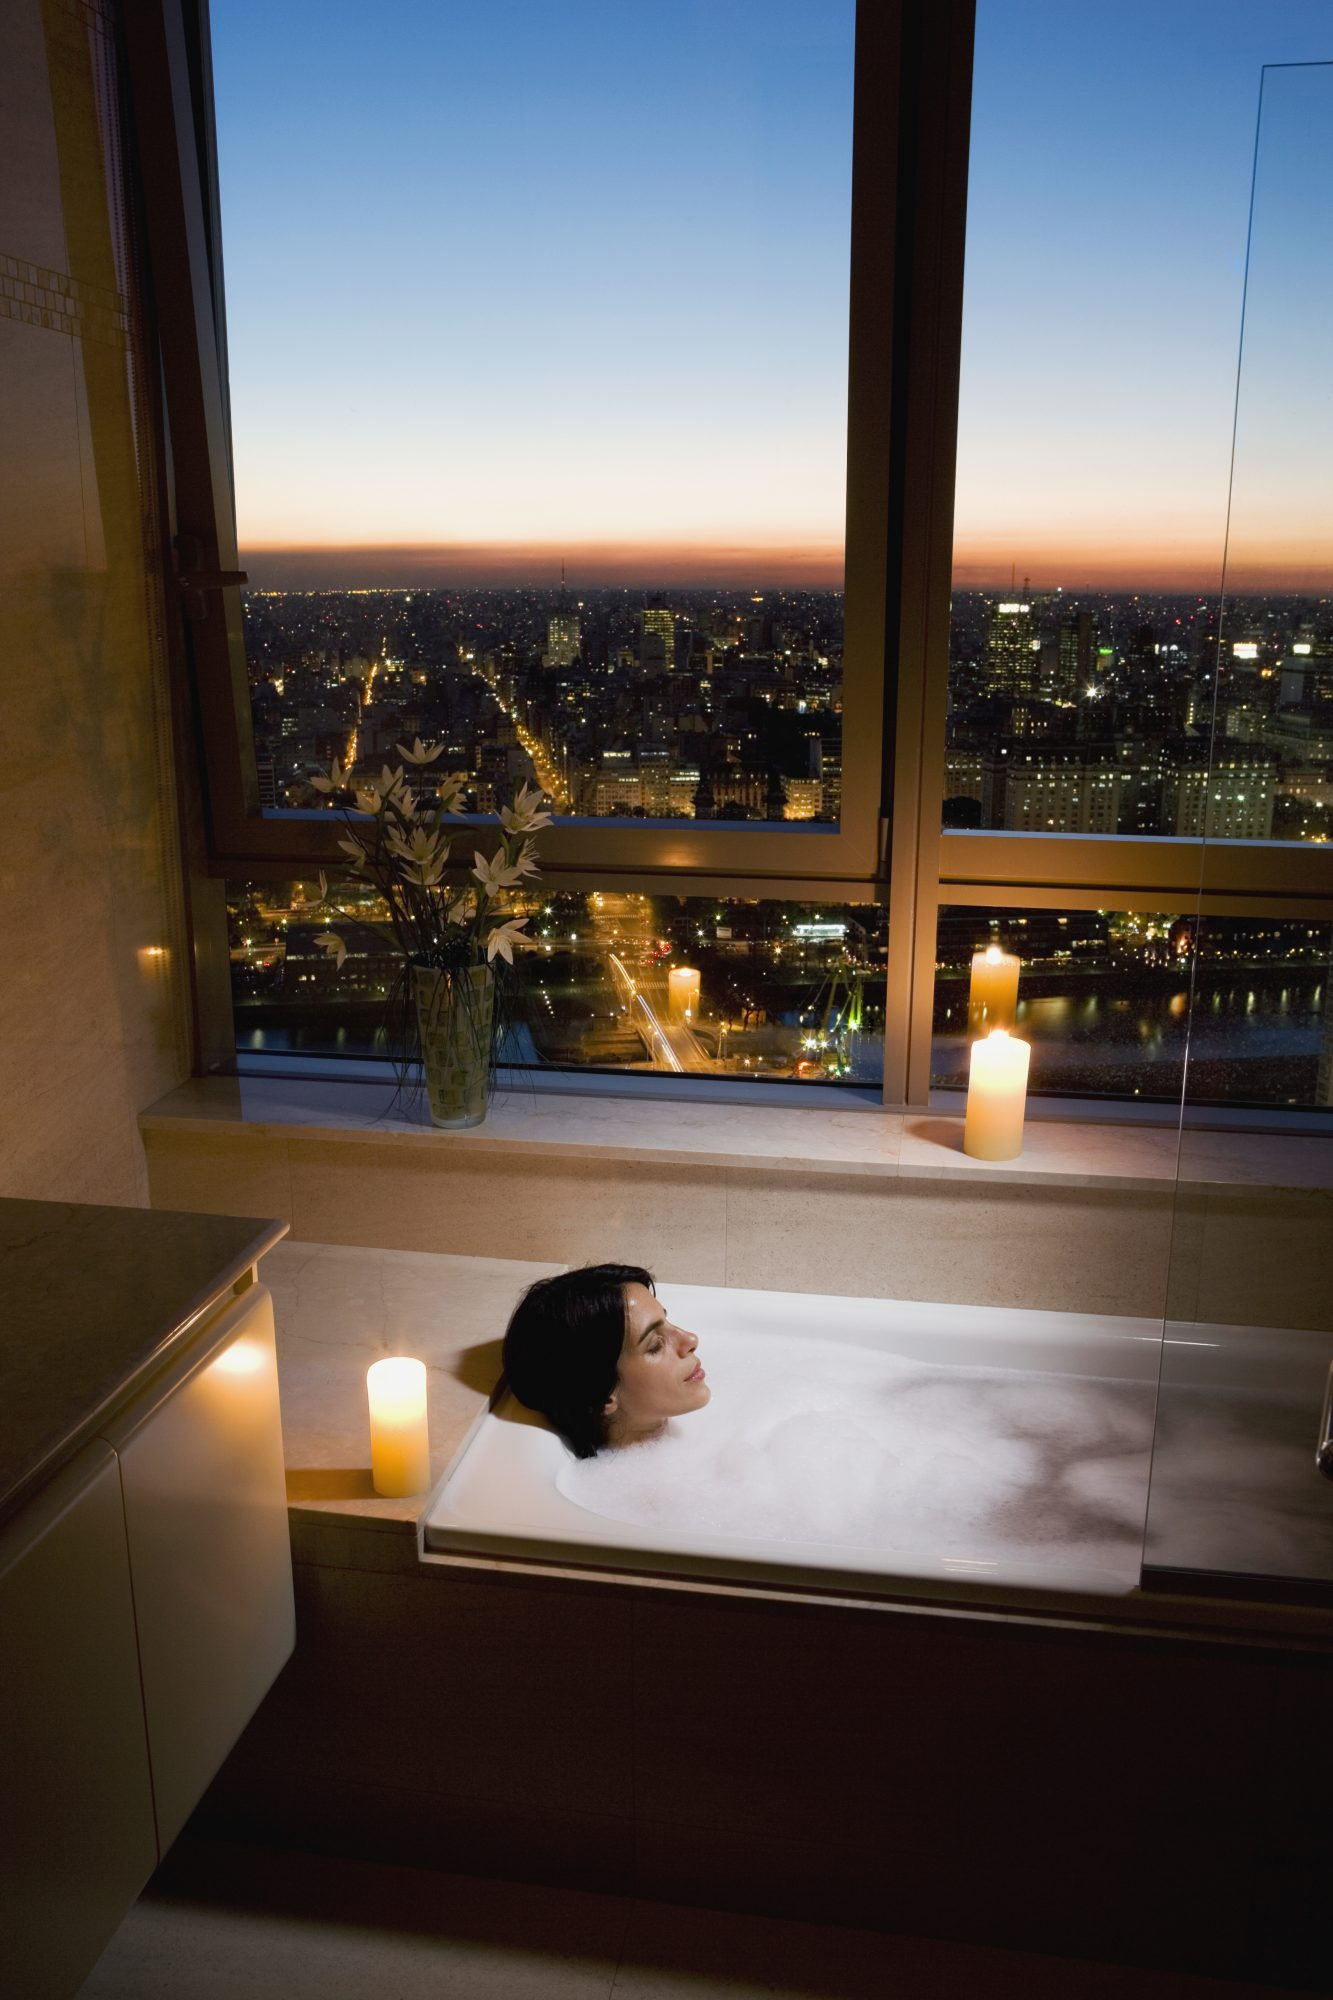 Woman taking a relaxing warm bath before bedtime